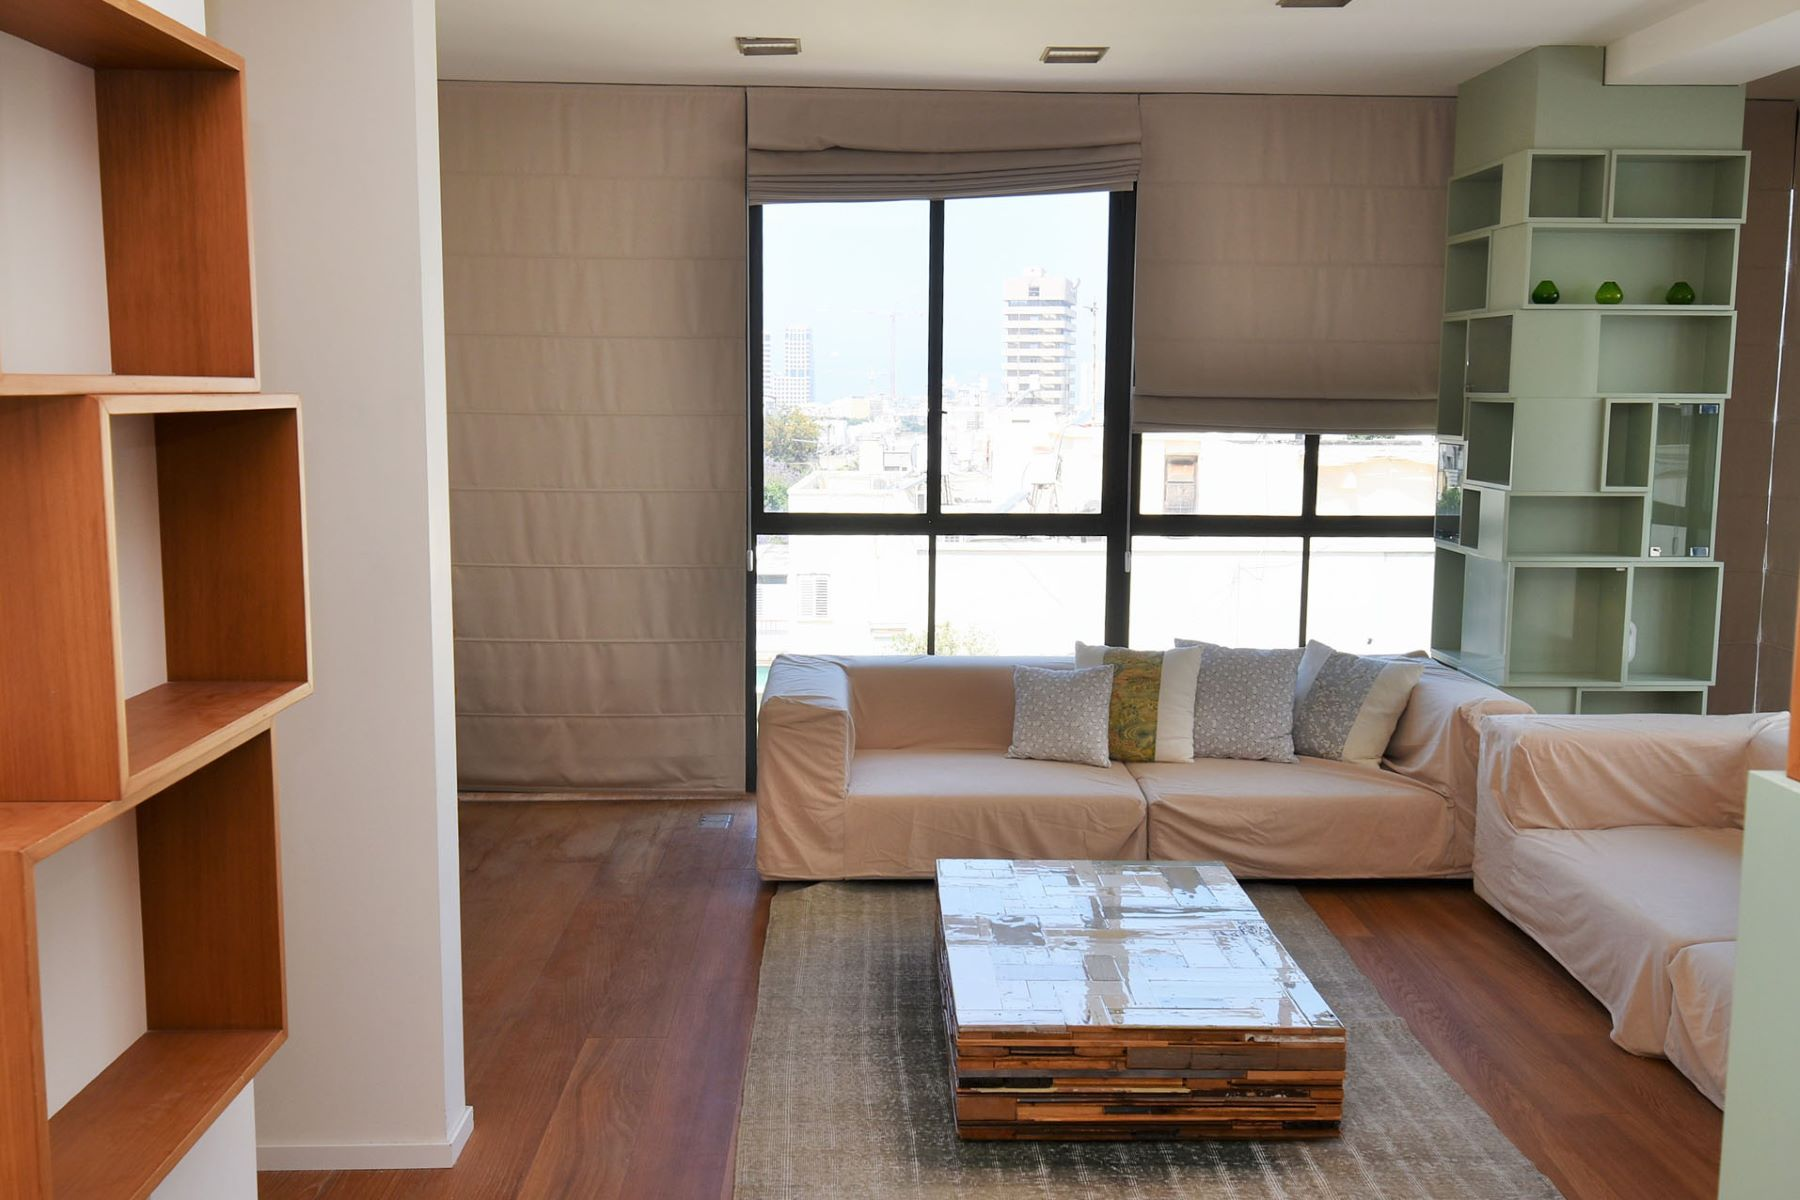 Additional photo for property listing at Historical and Unique Duplex in a Bauhaus Style Building Tel Aviv, Israel Israel